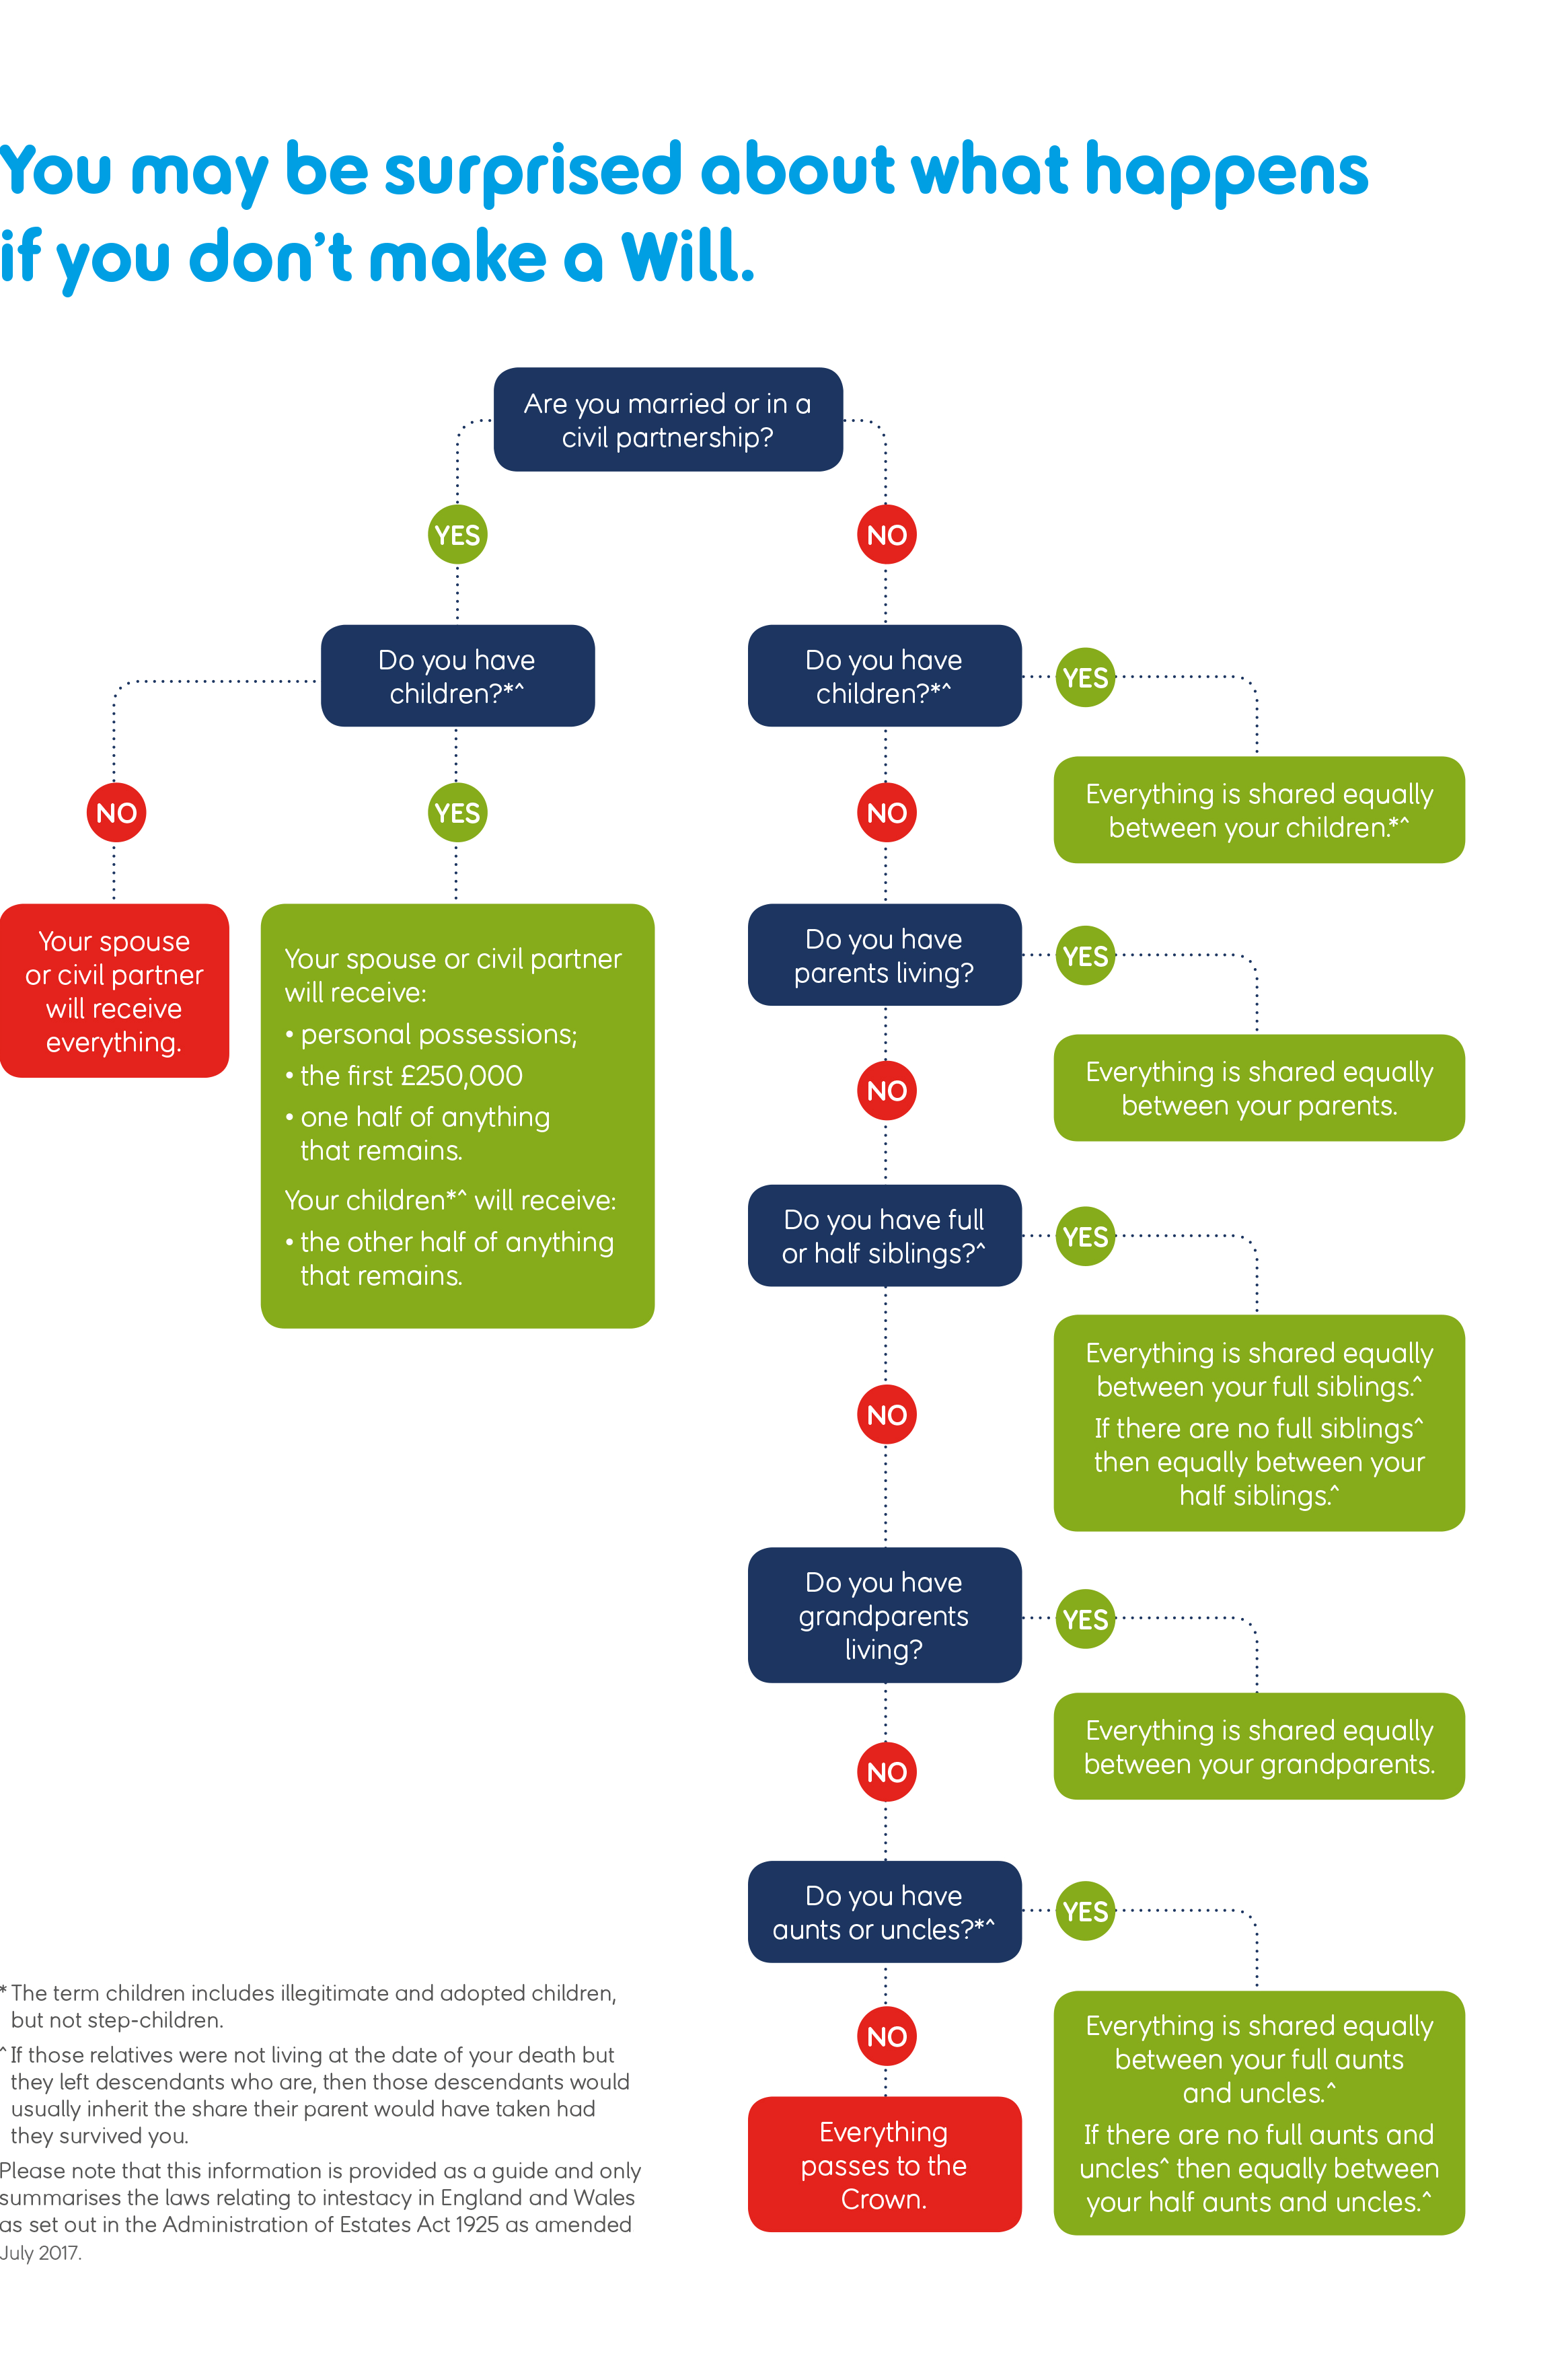 Rules of intestacy flowchart showing who will inherit it you die without a Will